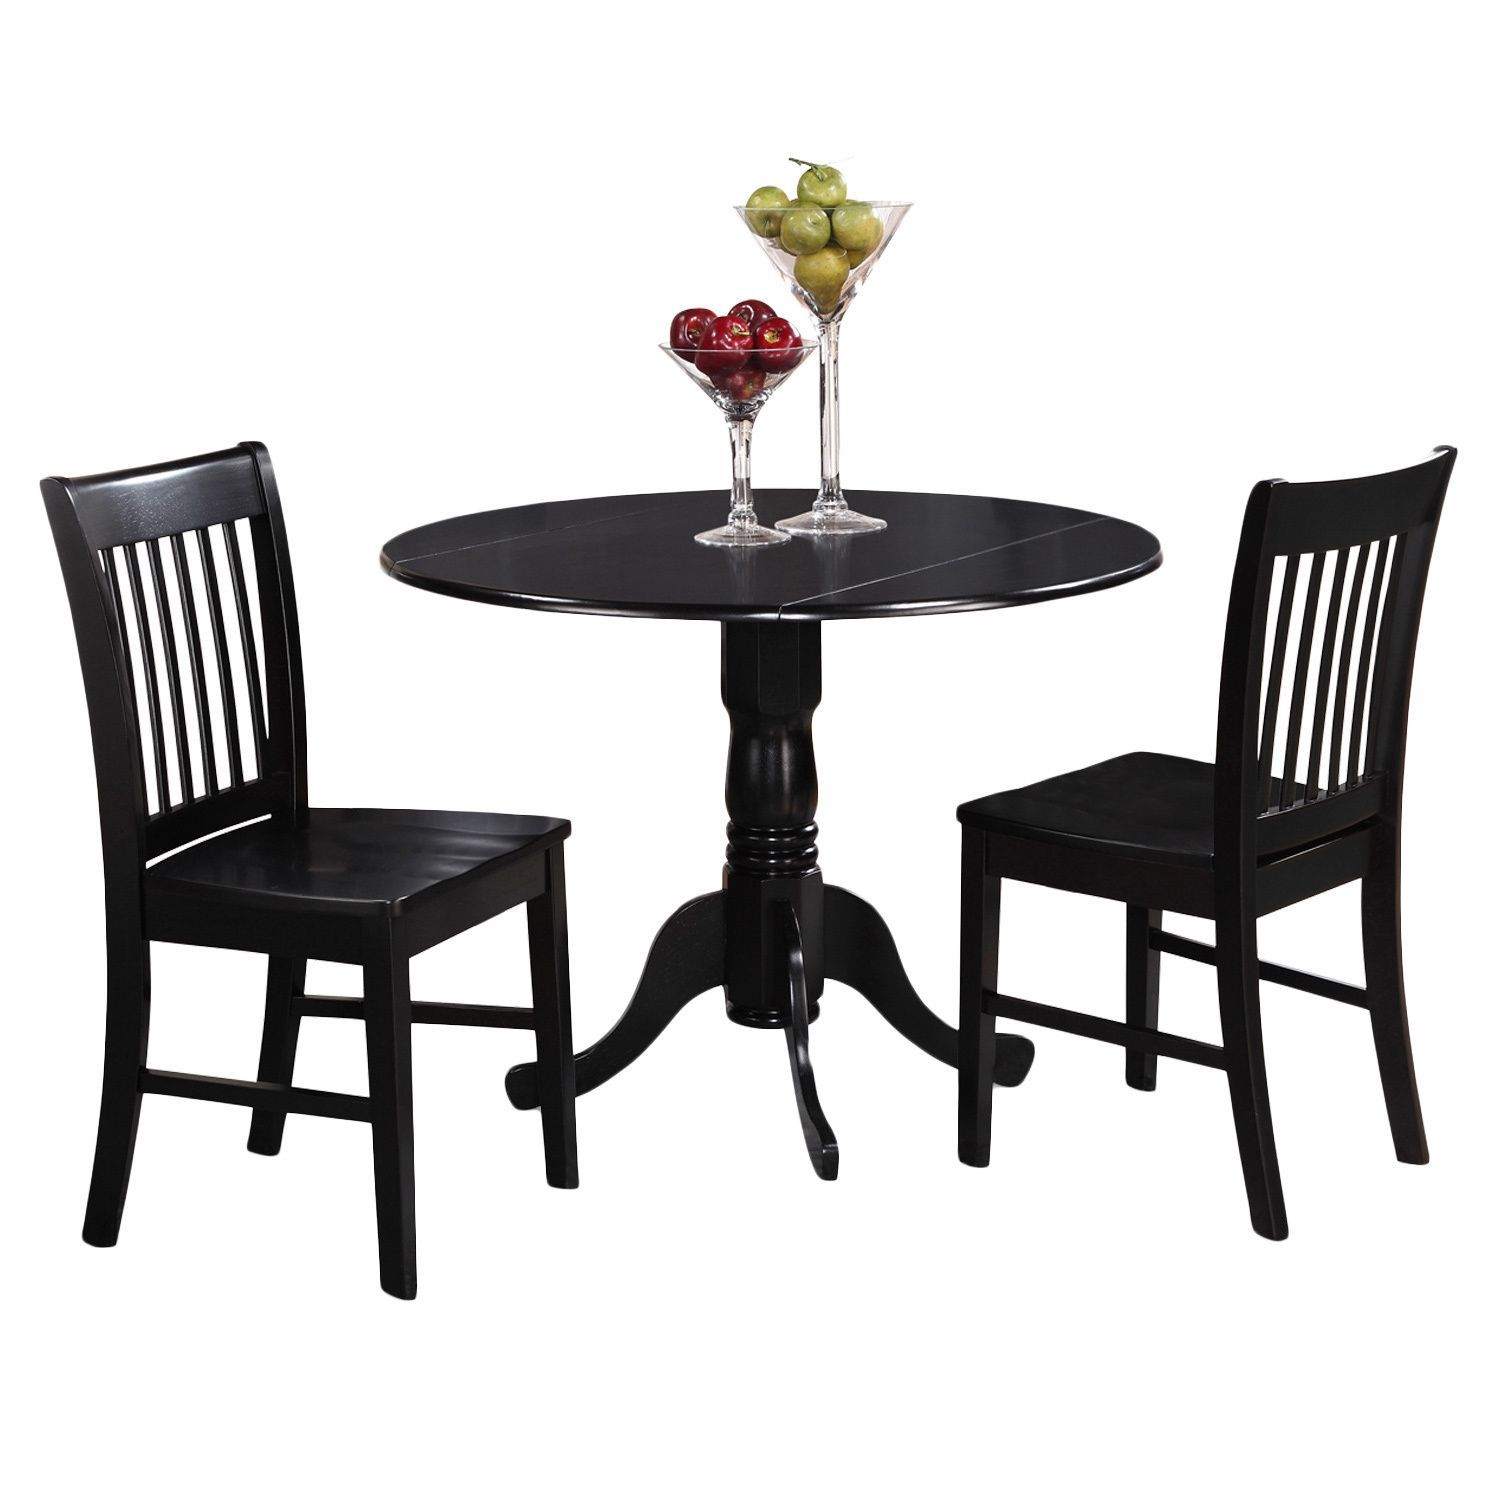 The Dublin Drop Leaf Kitchen Dining Tables Set Are Of Small Dimension,  Which Is Well